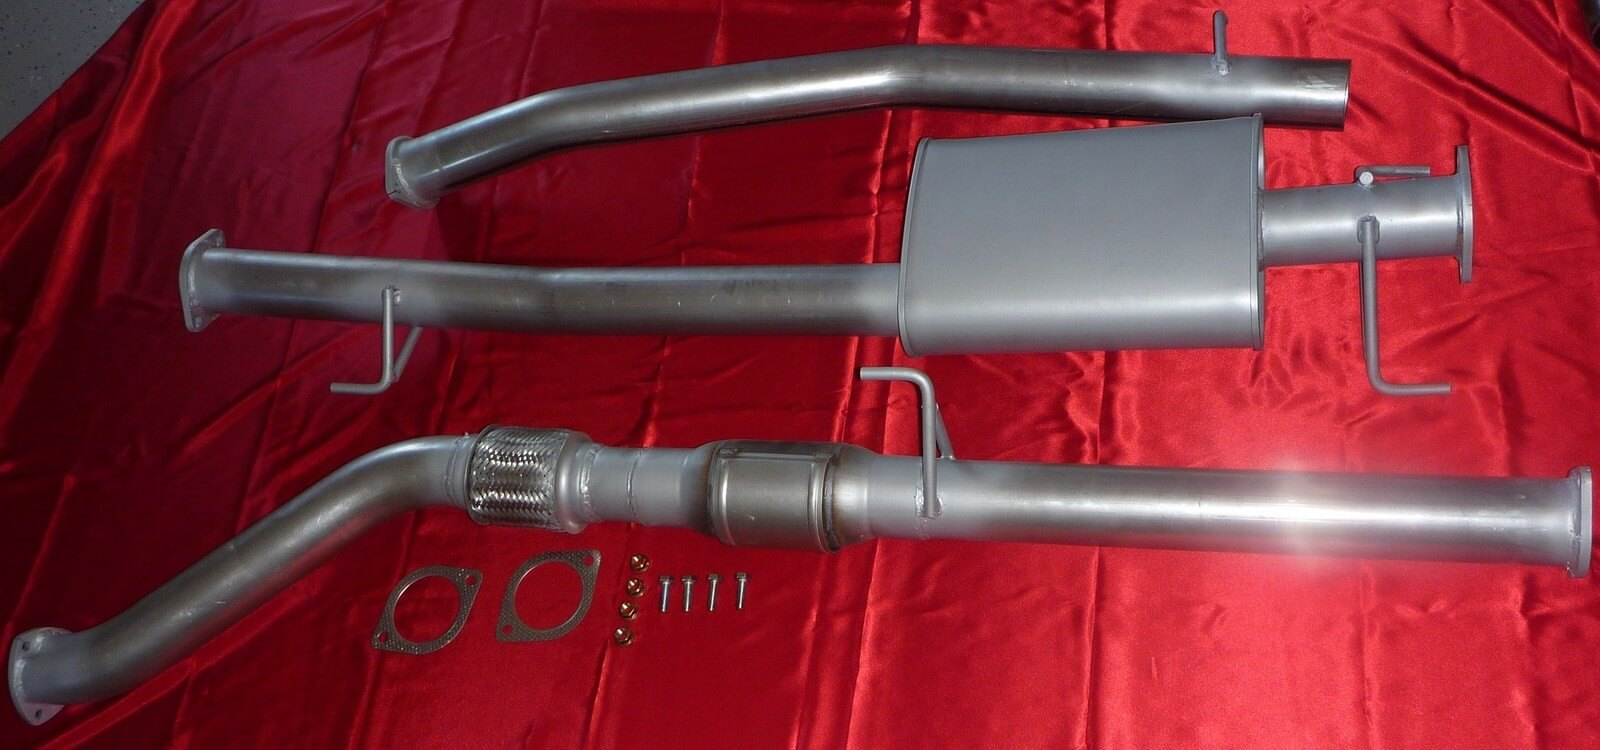 "Toyota Hilux Ute 3.0L 2005 - 2015 3"" Exhaust 4x4 Turbo Diesel No Cat 409 Stainless Steel 3 inch Turbo Back Exhaust System - Click to enlarge picture."